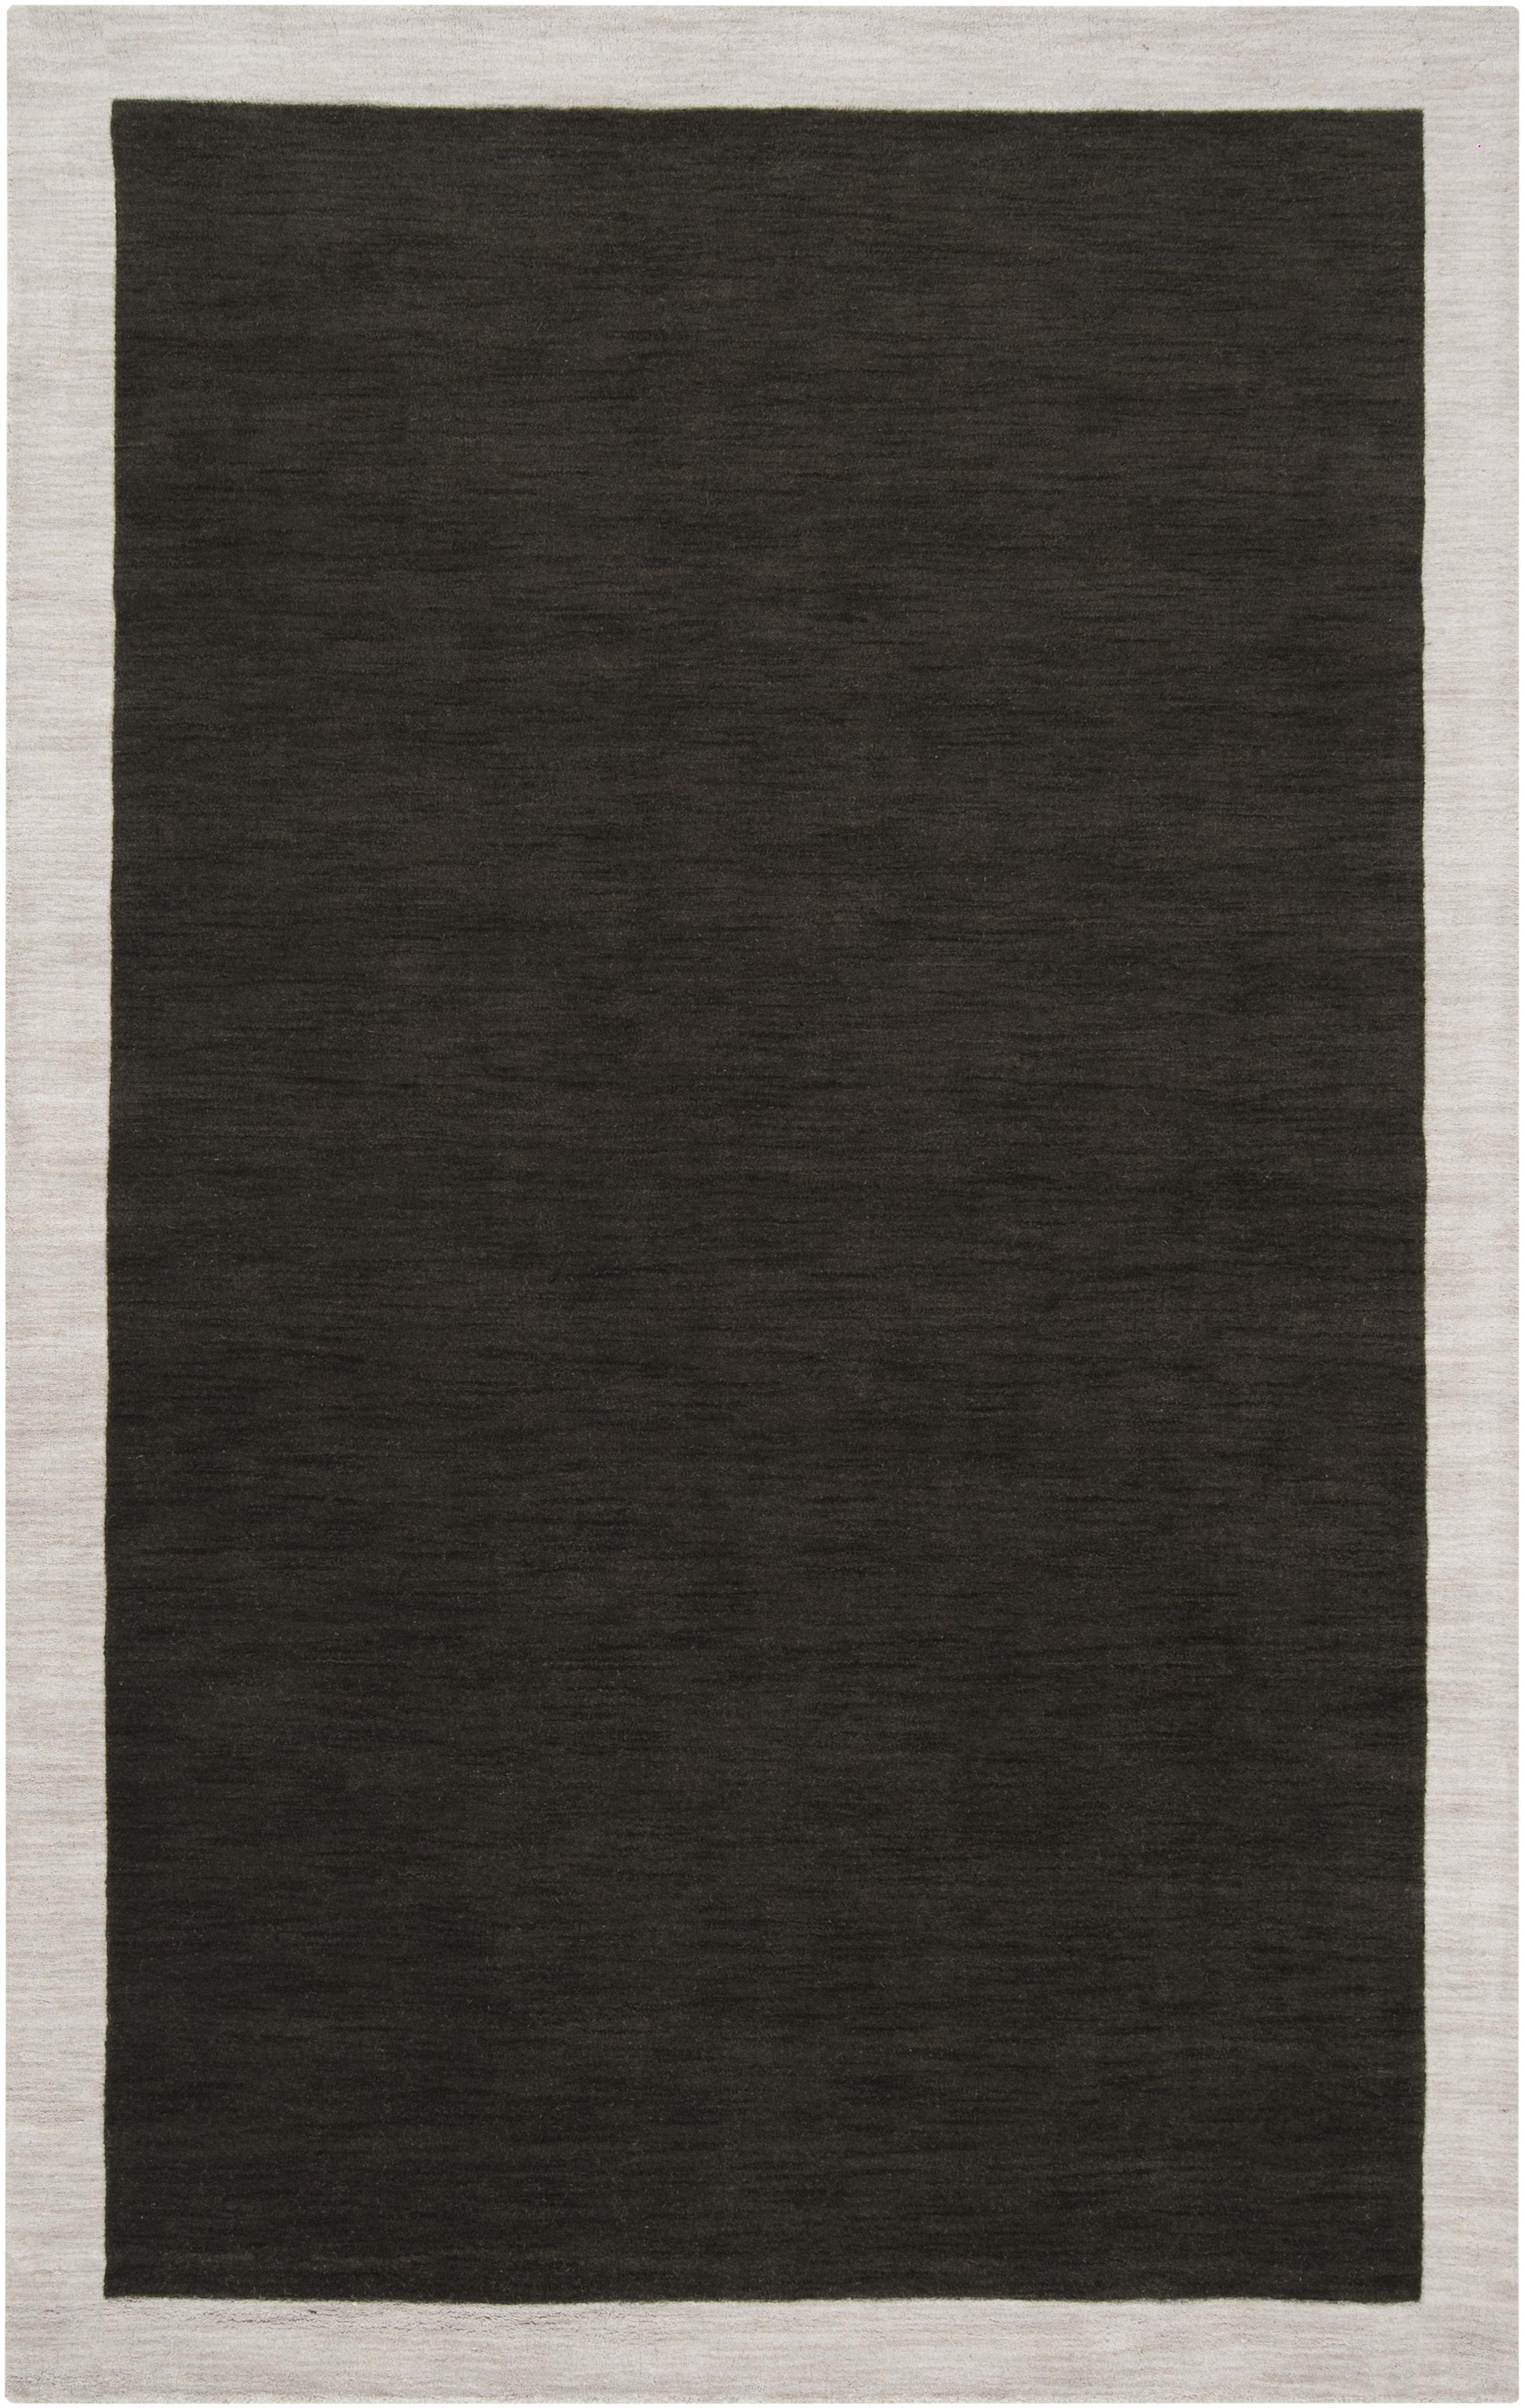 Surya Rugs Madison Square 8' x 10' - Item Number: MDS1004-810